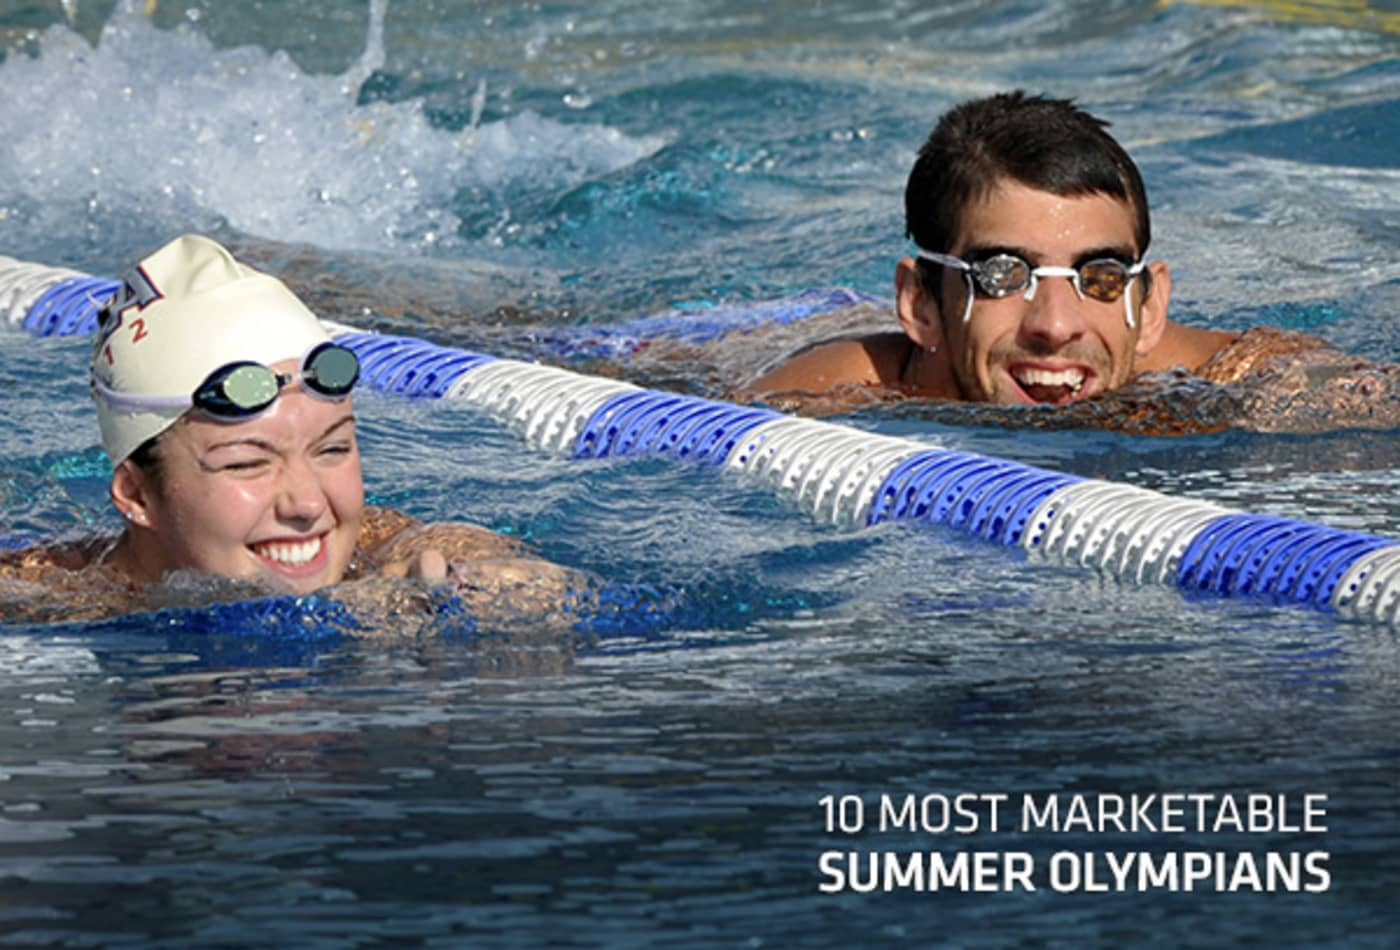 10-Most-Marketable-Summer-Olympians-cover.jpg